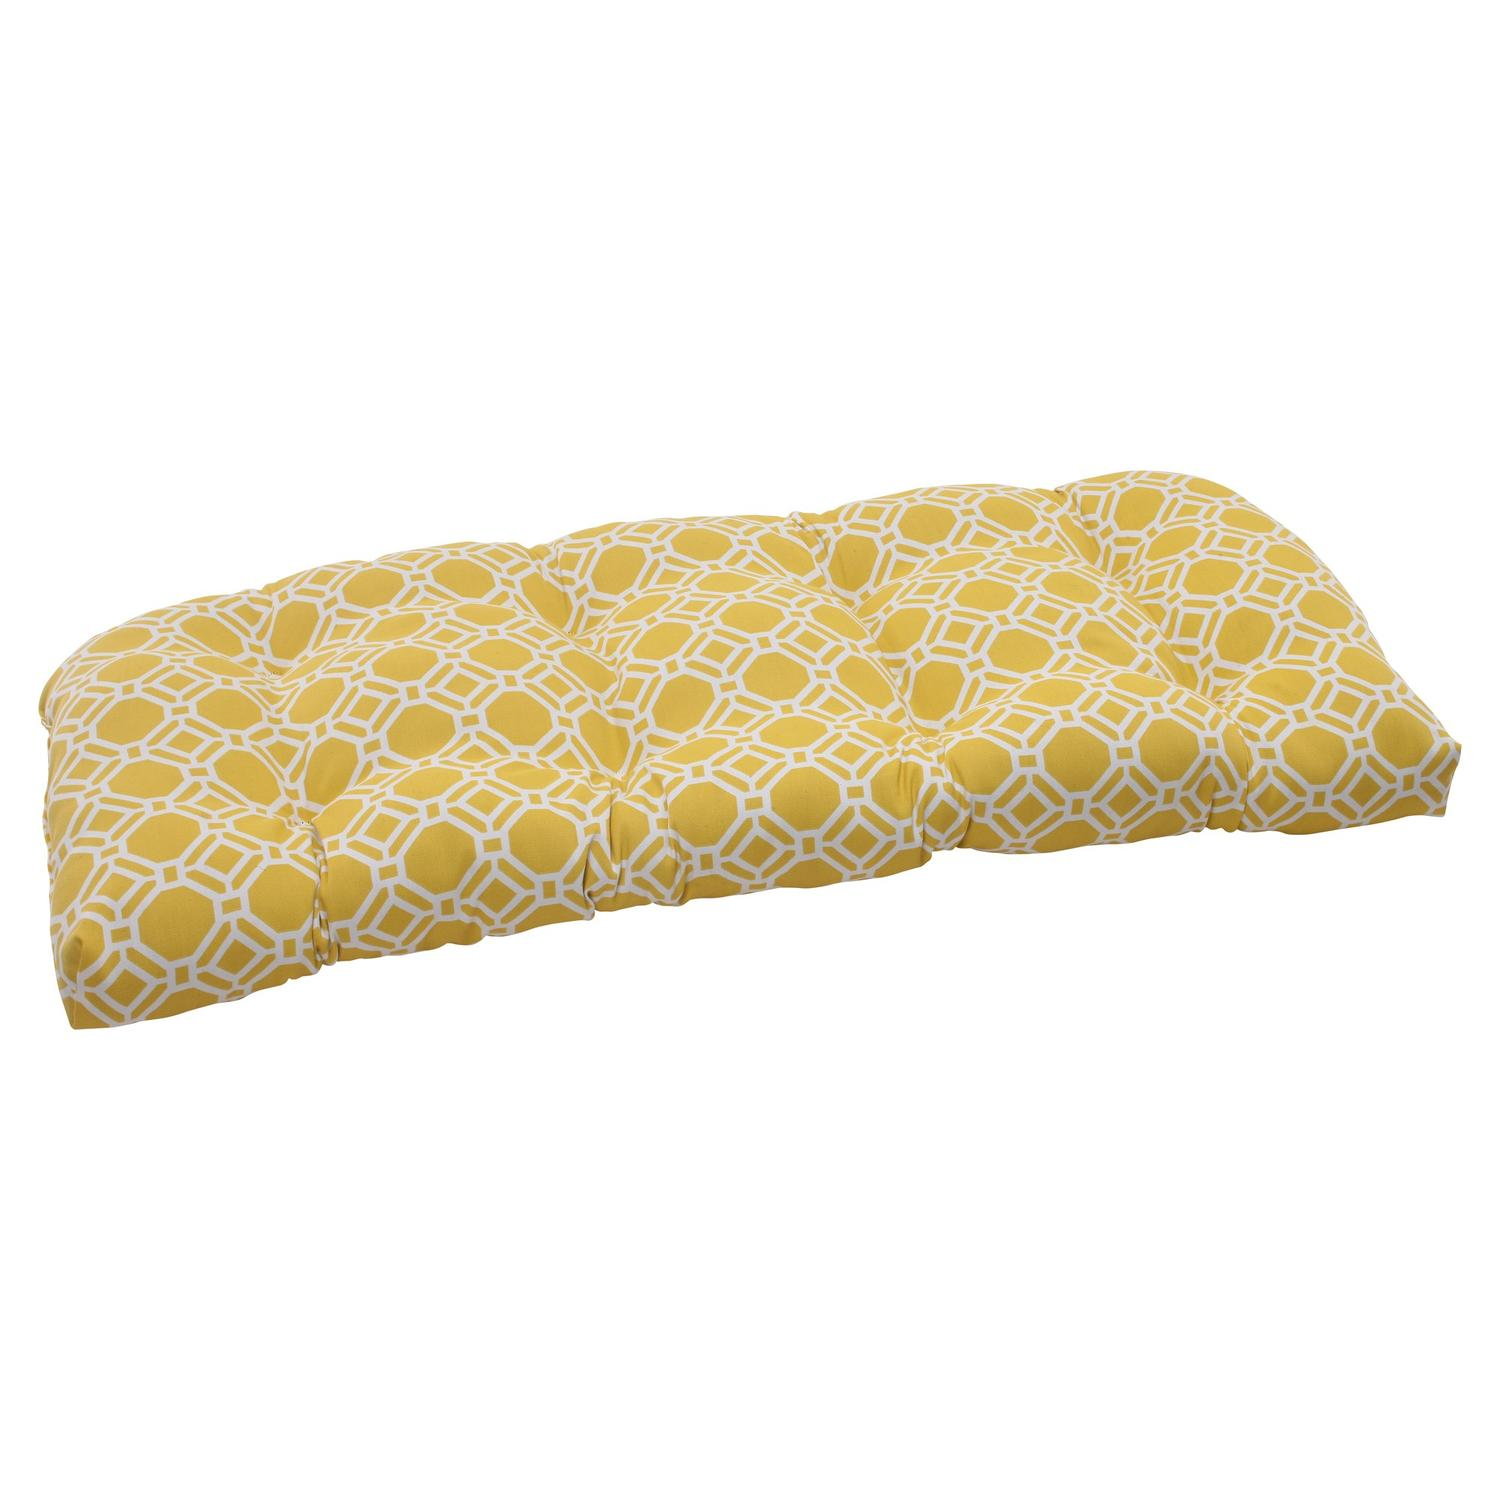 "44"" Yellow & White Octagonal Chain Outdoor Patio Tufted Wicker Loveseat Cushion"